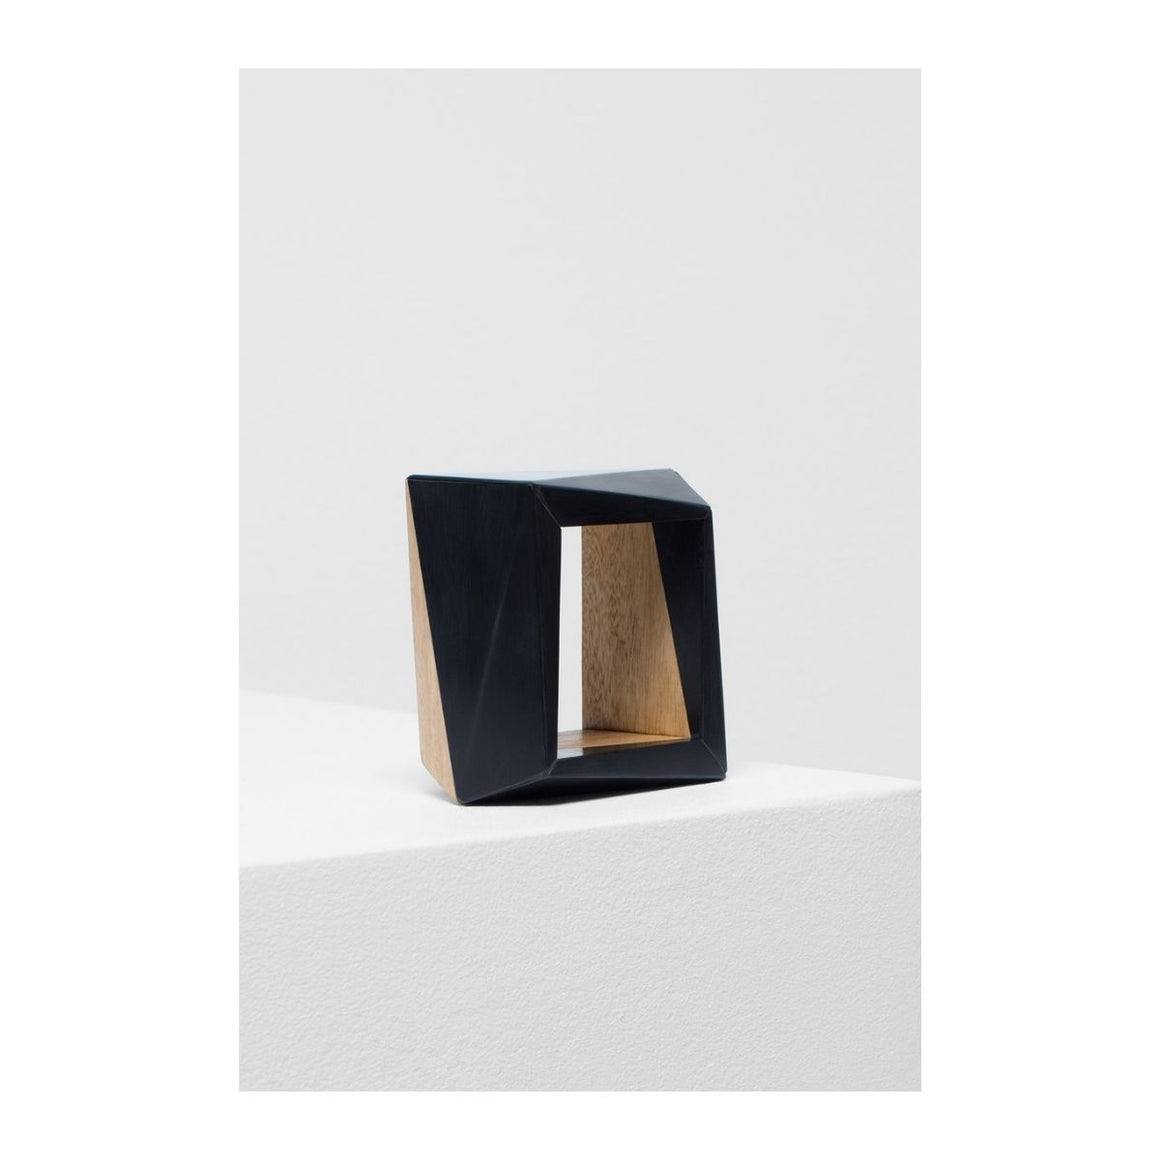 Image featuring a geometric bangle with a black resin face facing the camera and with bits of wood that can be seen at the back